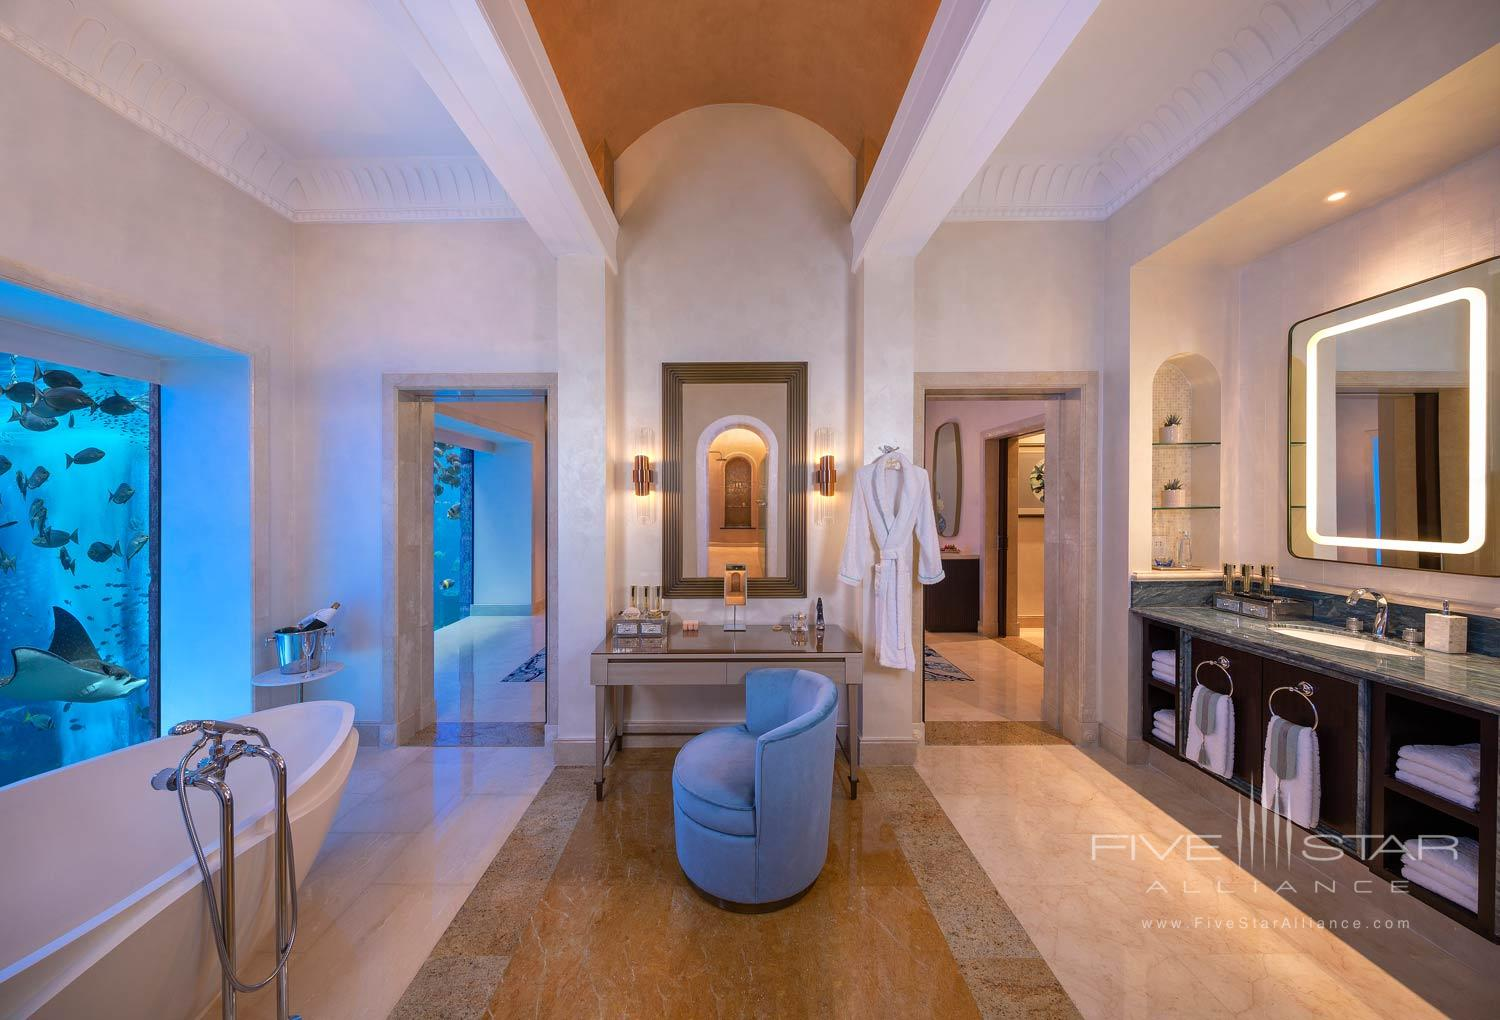 Underwater Suite Bathroom at Atlantis The Palm Dubai